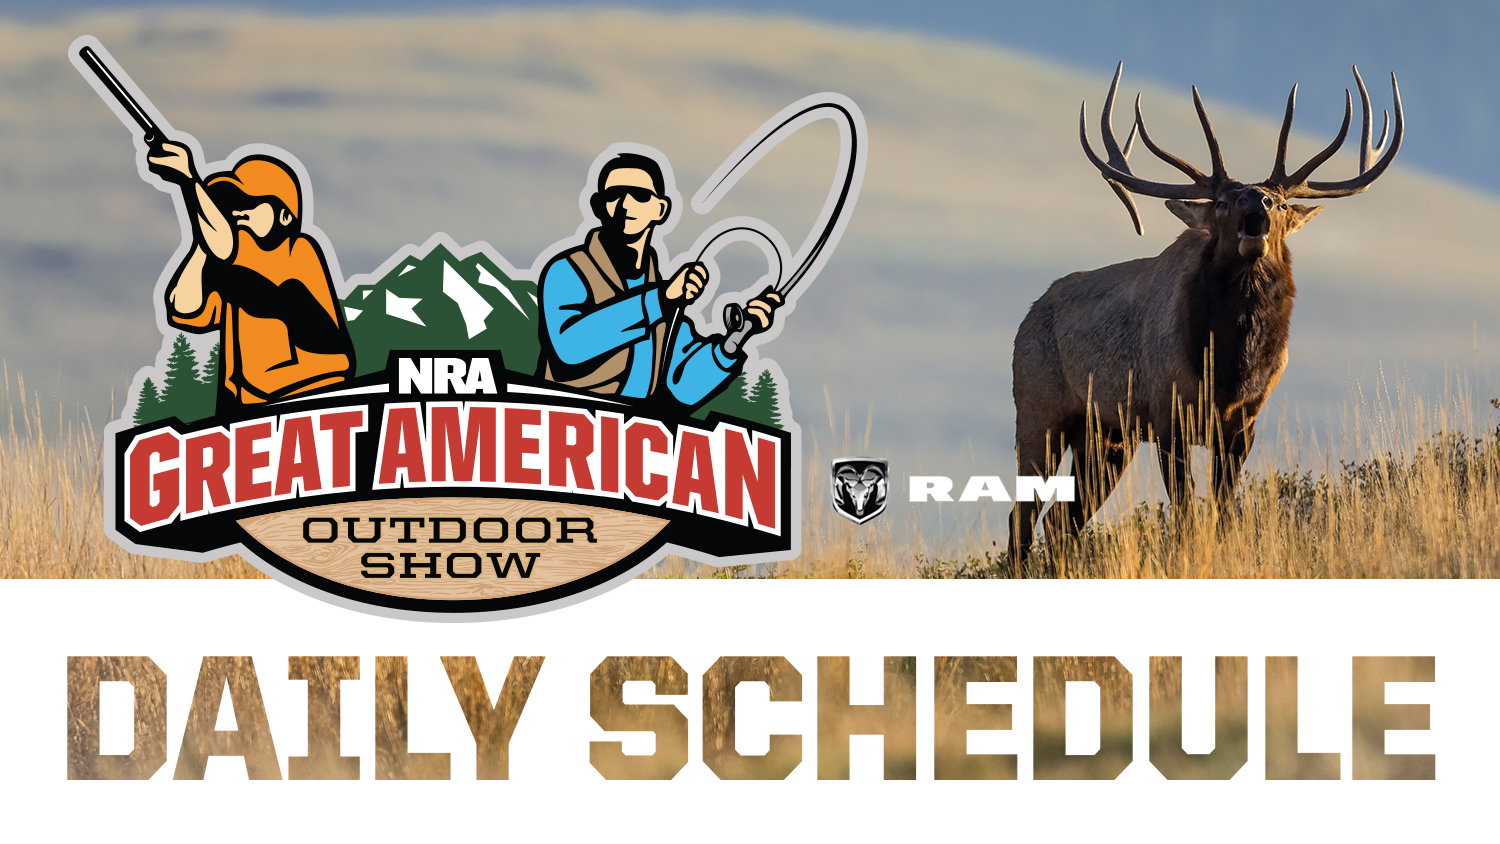 2019 Great American Outdoor Show Daily Schedule - Monday, February 4